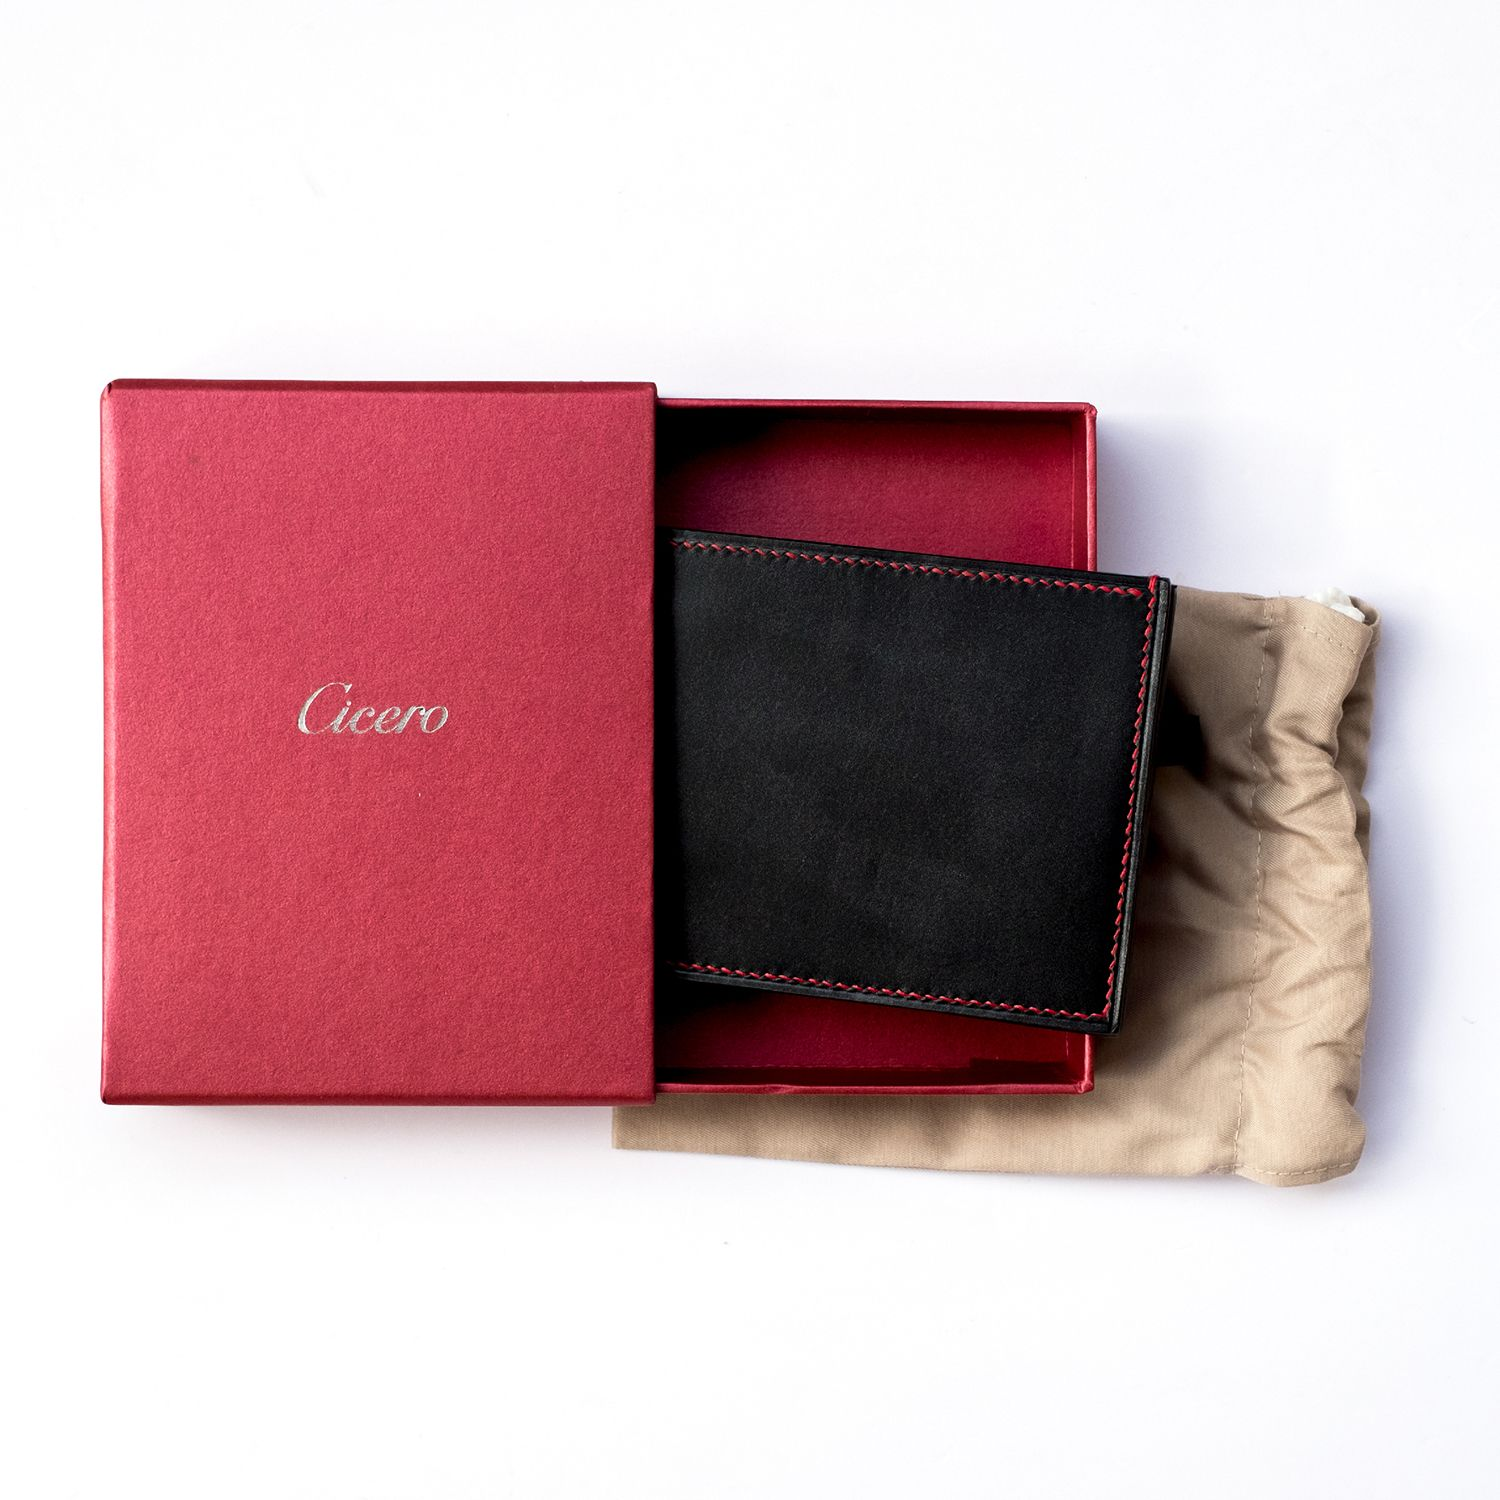 Bifold Vs Trifold Wallet Which Is Better For Men Mens Leather Wallet Bifold Best Leather Wallet Wallet